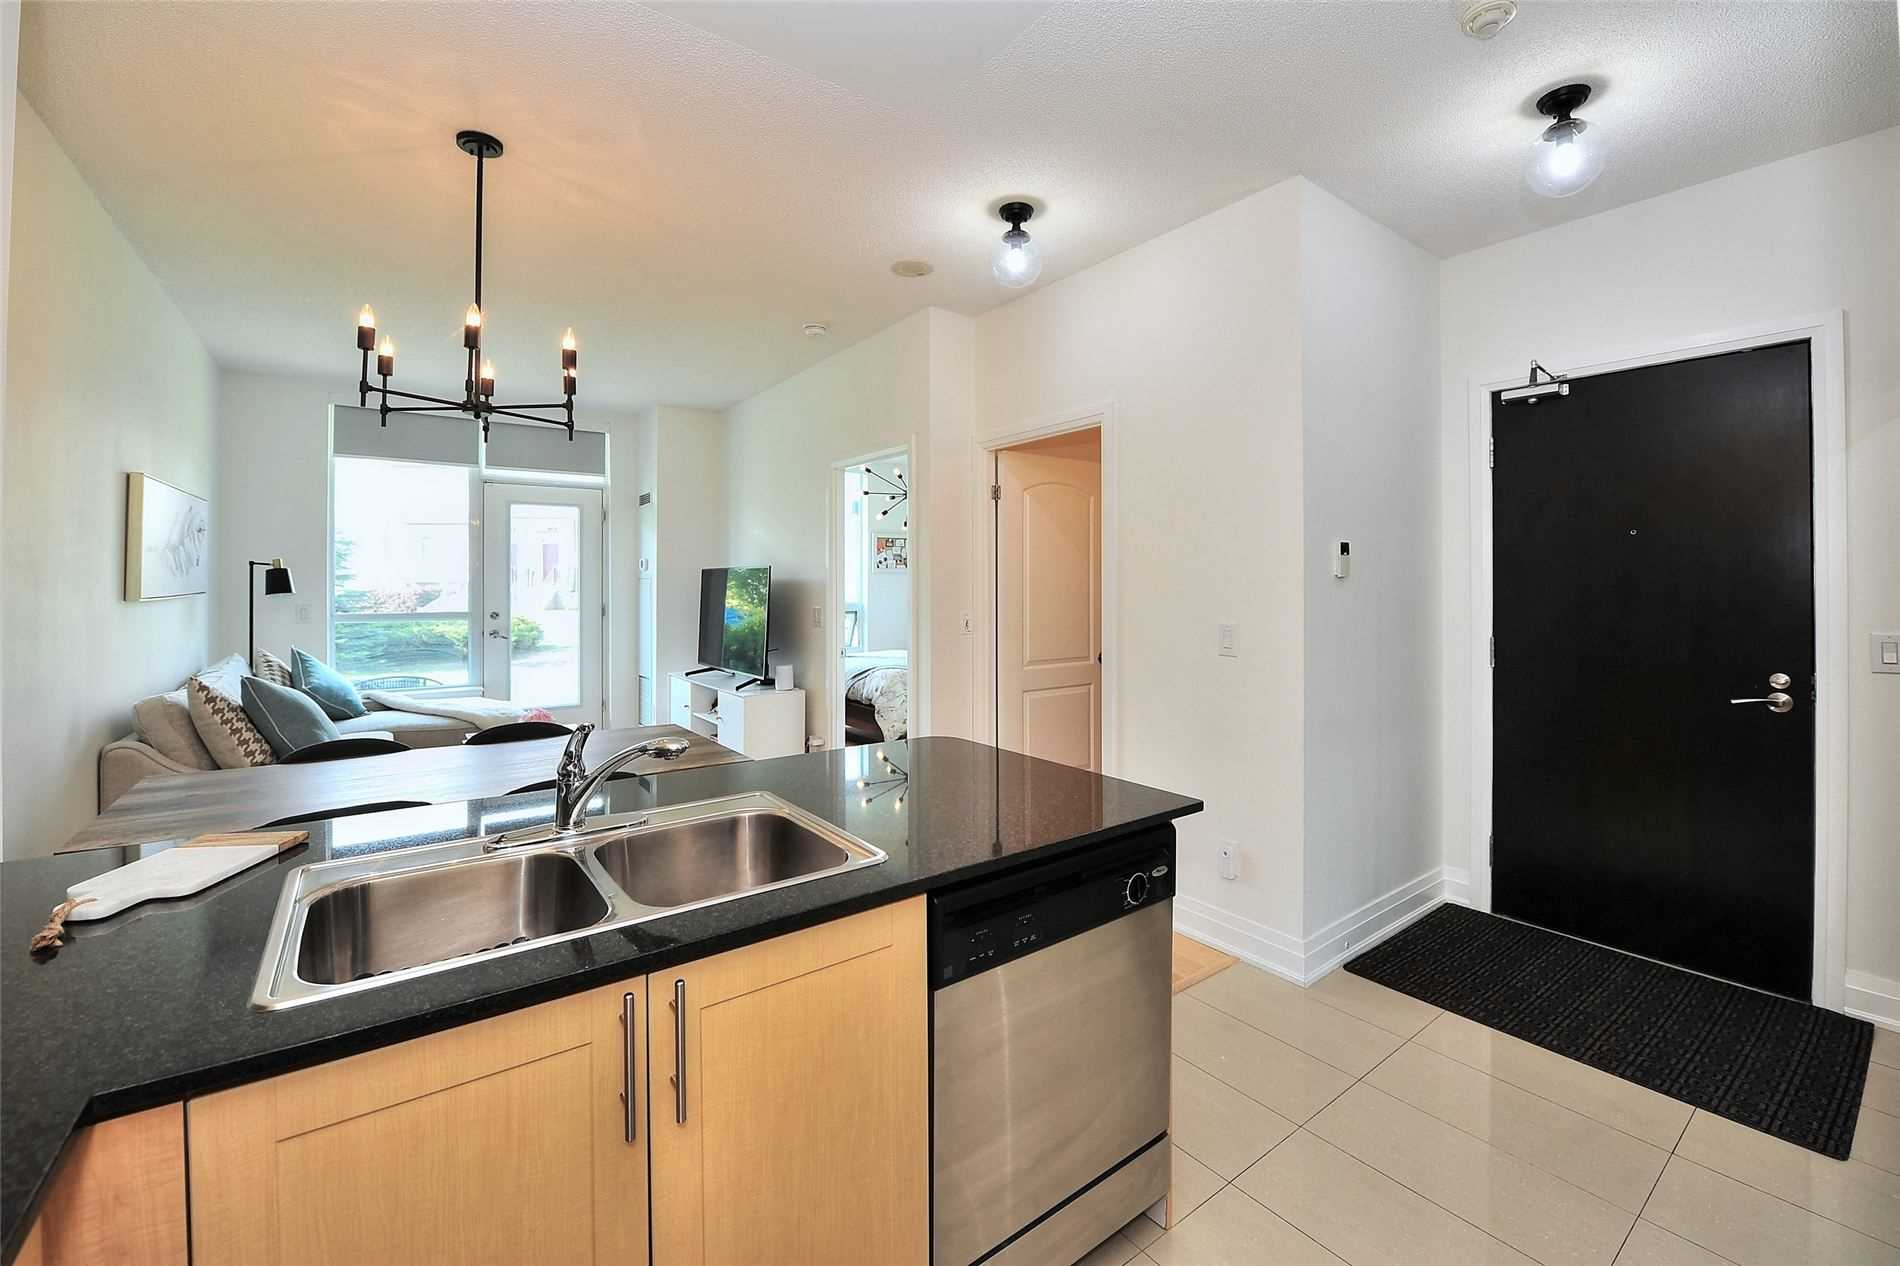 Image 11 of 30 showing inside of 1 Bedroom Condo Apt Apartment for Sale at 30 North Park Rd Unit# 101, Vaughan L4J0G6